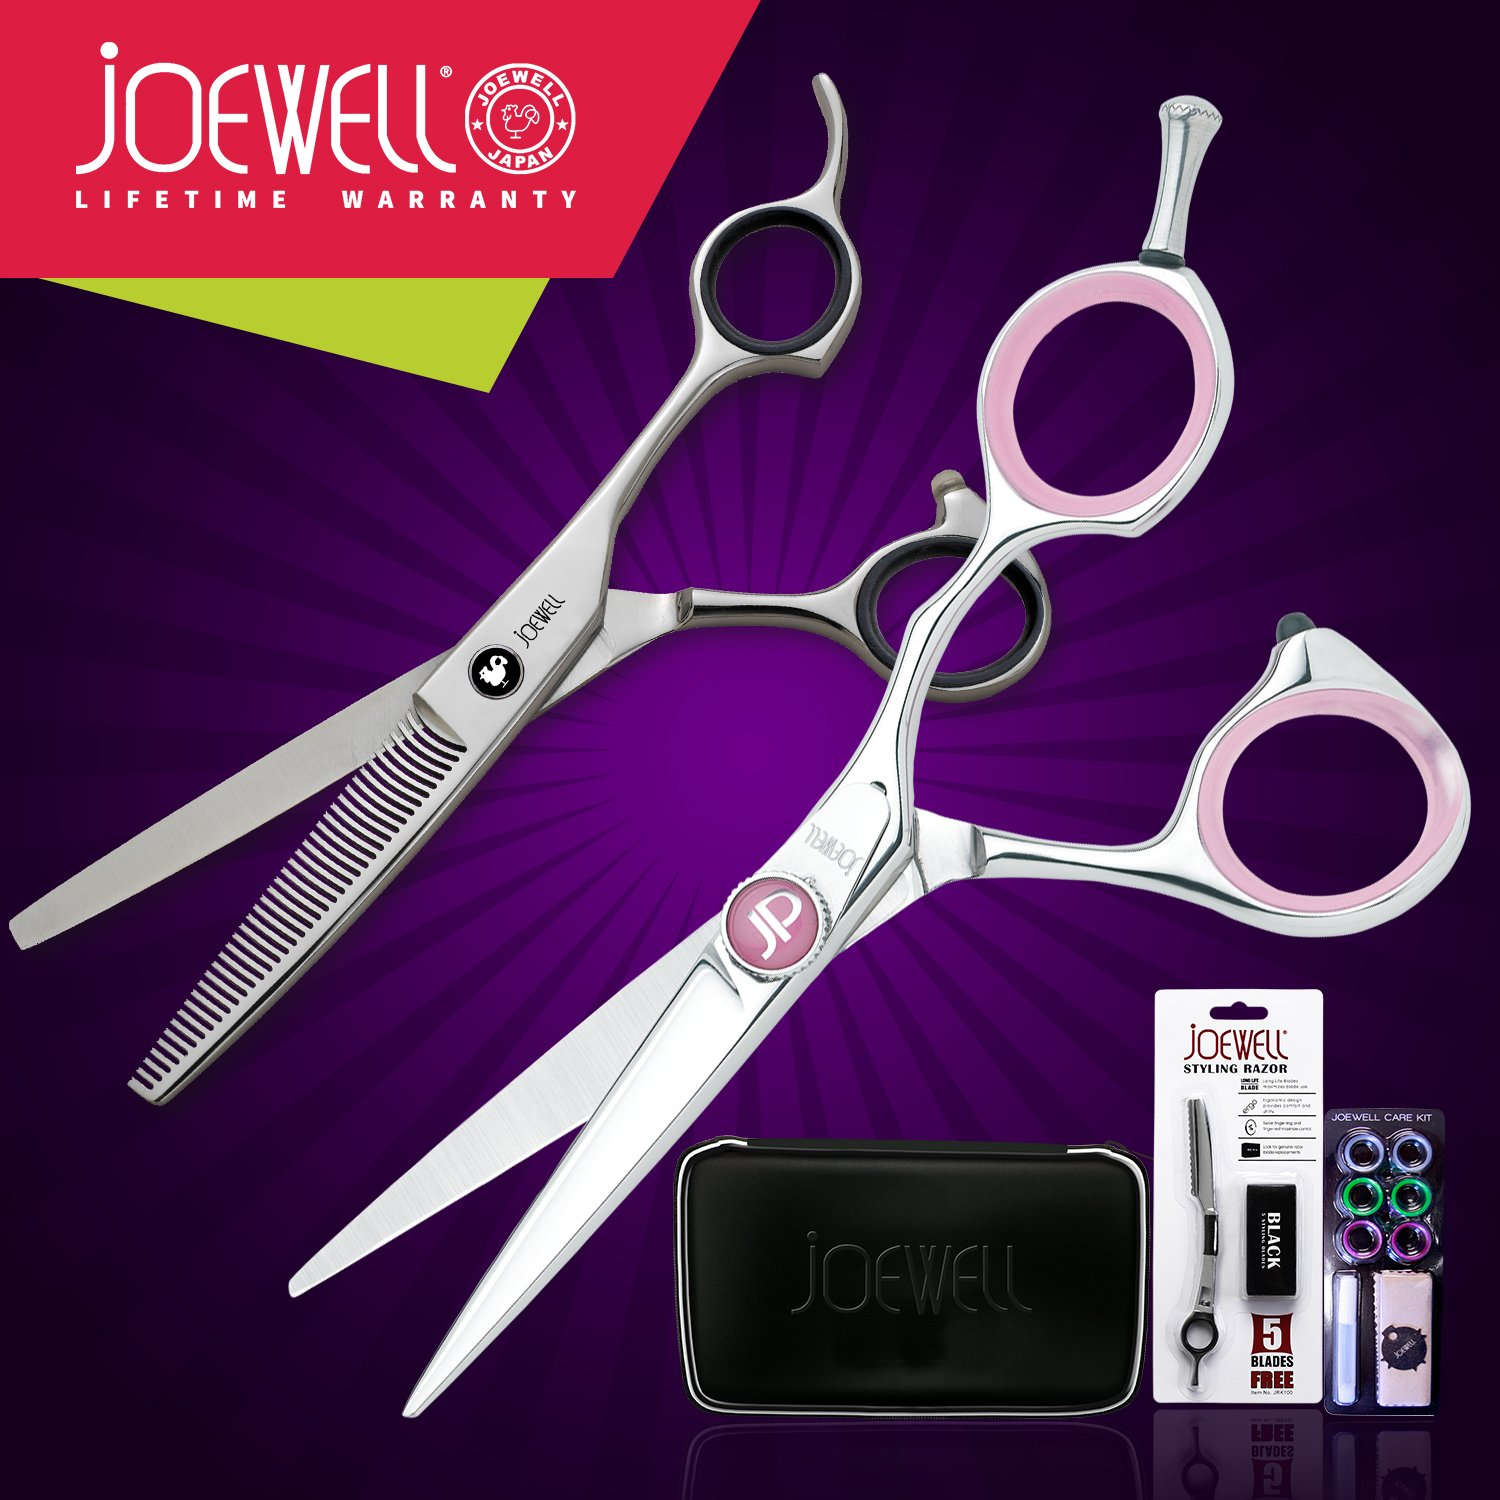 Joewell JP 5.5 Shears / Scissors + Free Thinner & More scissors 6 inch professional hair cutting scissors hairdressing salon barber shears dragon shaped handle